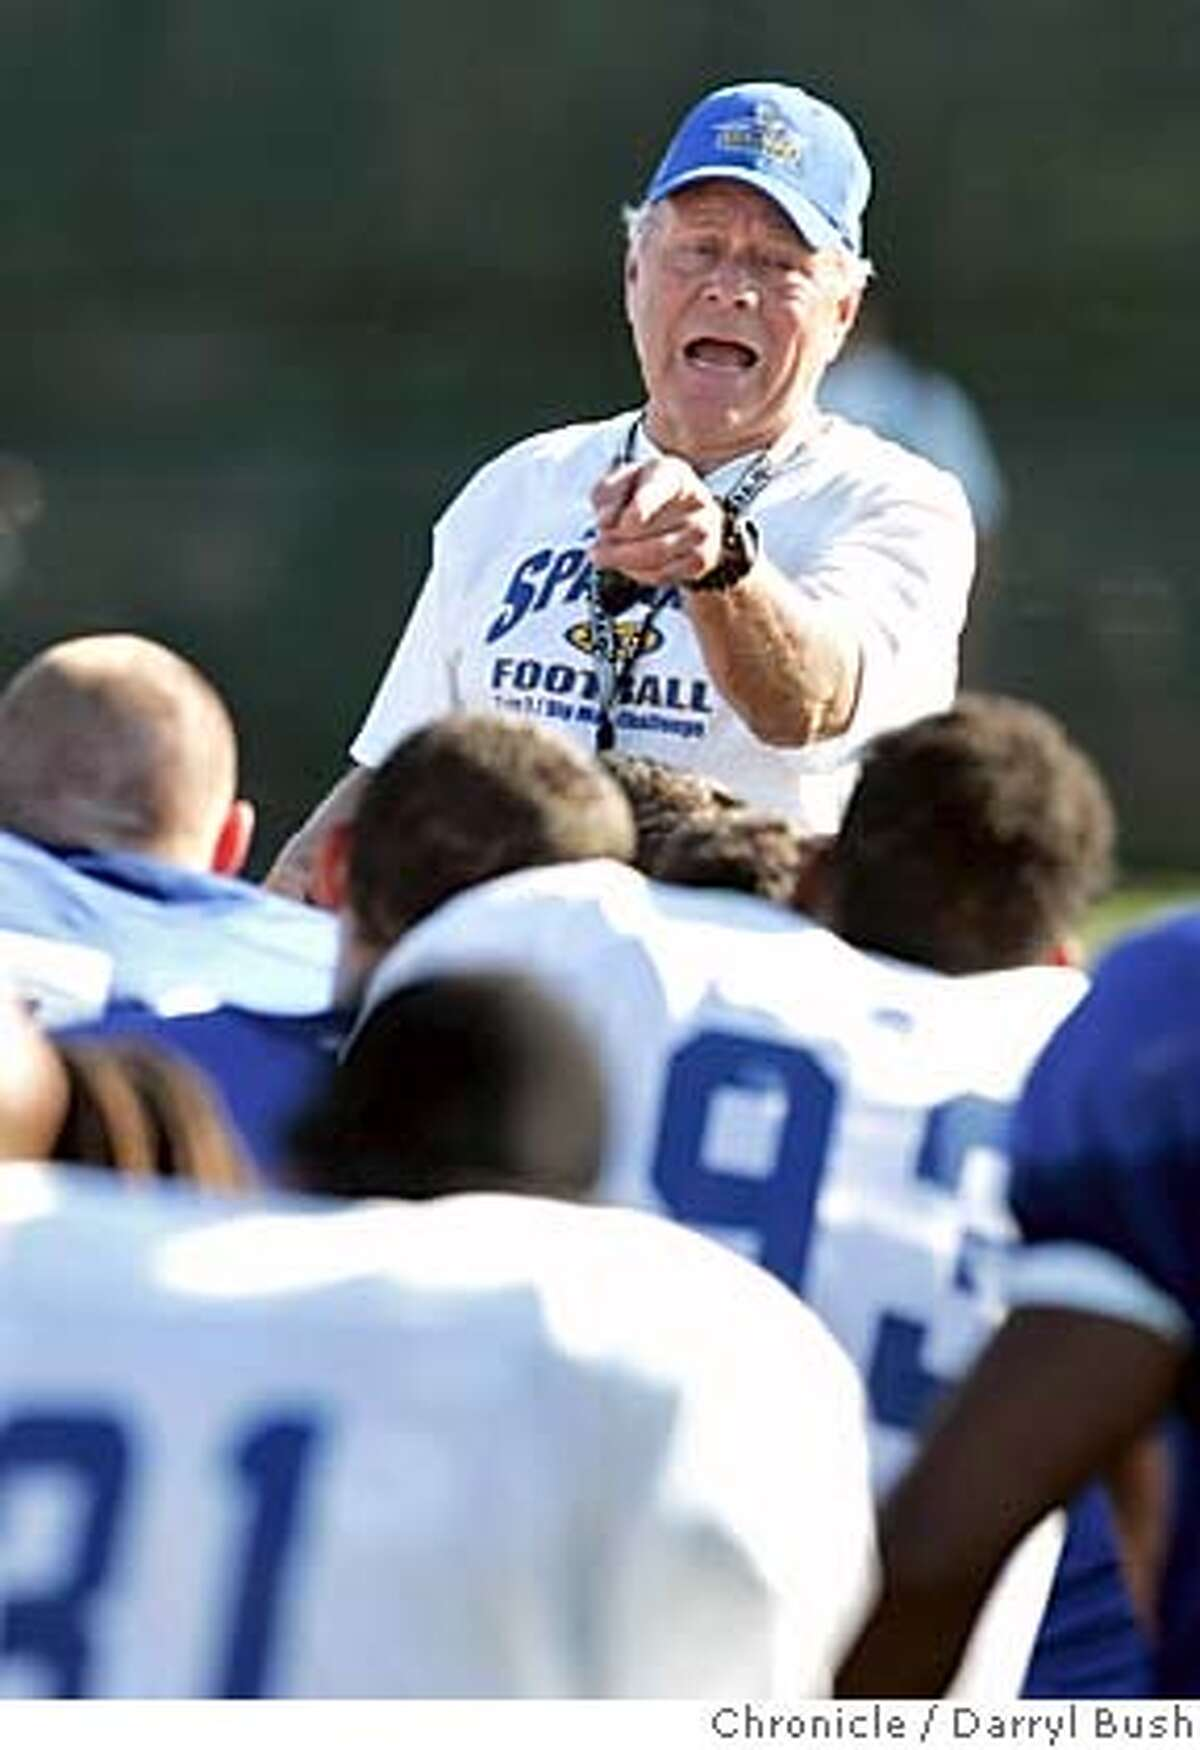 sjsufootball_332_db.jpg San Jose State head coach Dick Tomey talks to players after scrimmage at football practice at Spartan Stadium. Event on 8/11/05 in San Jose. Darryl Bush / The Chronicle MANDATORY CREDIT FOR PHOTOG AND SF CHRONICLE/ -MAGS OUT